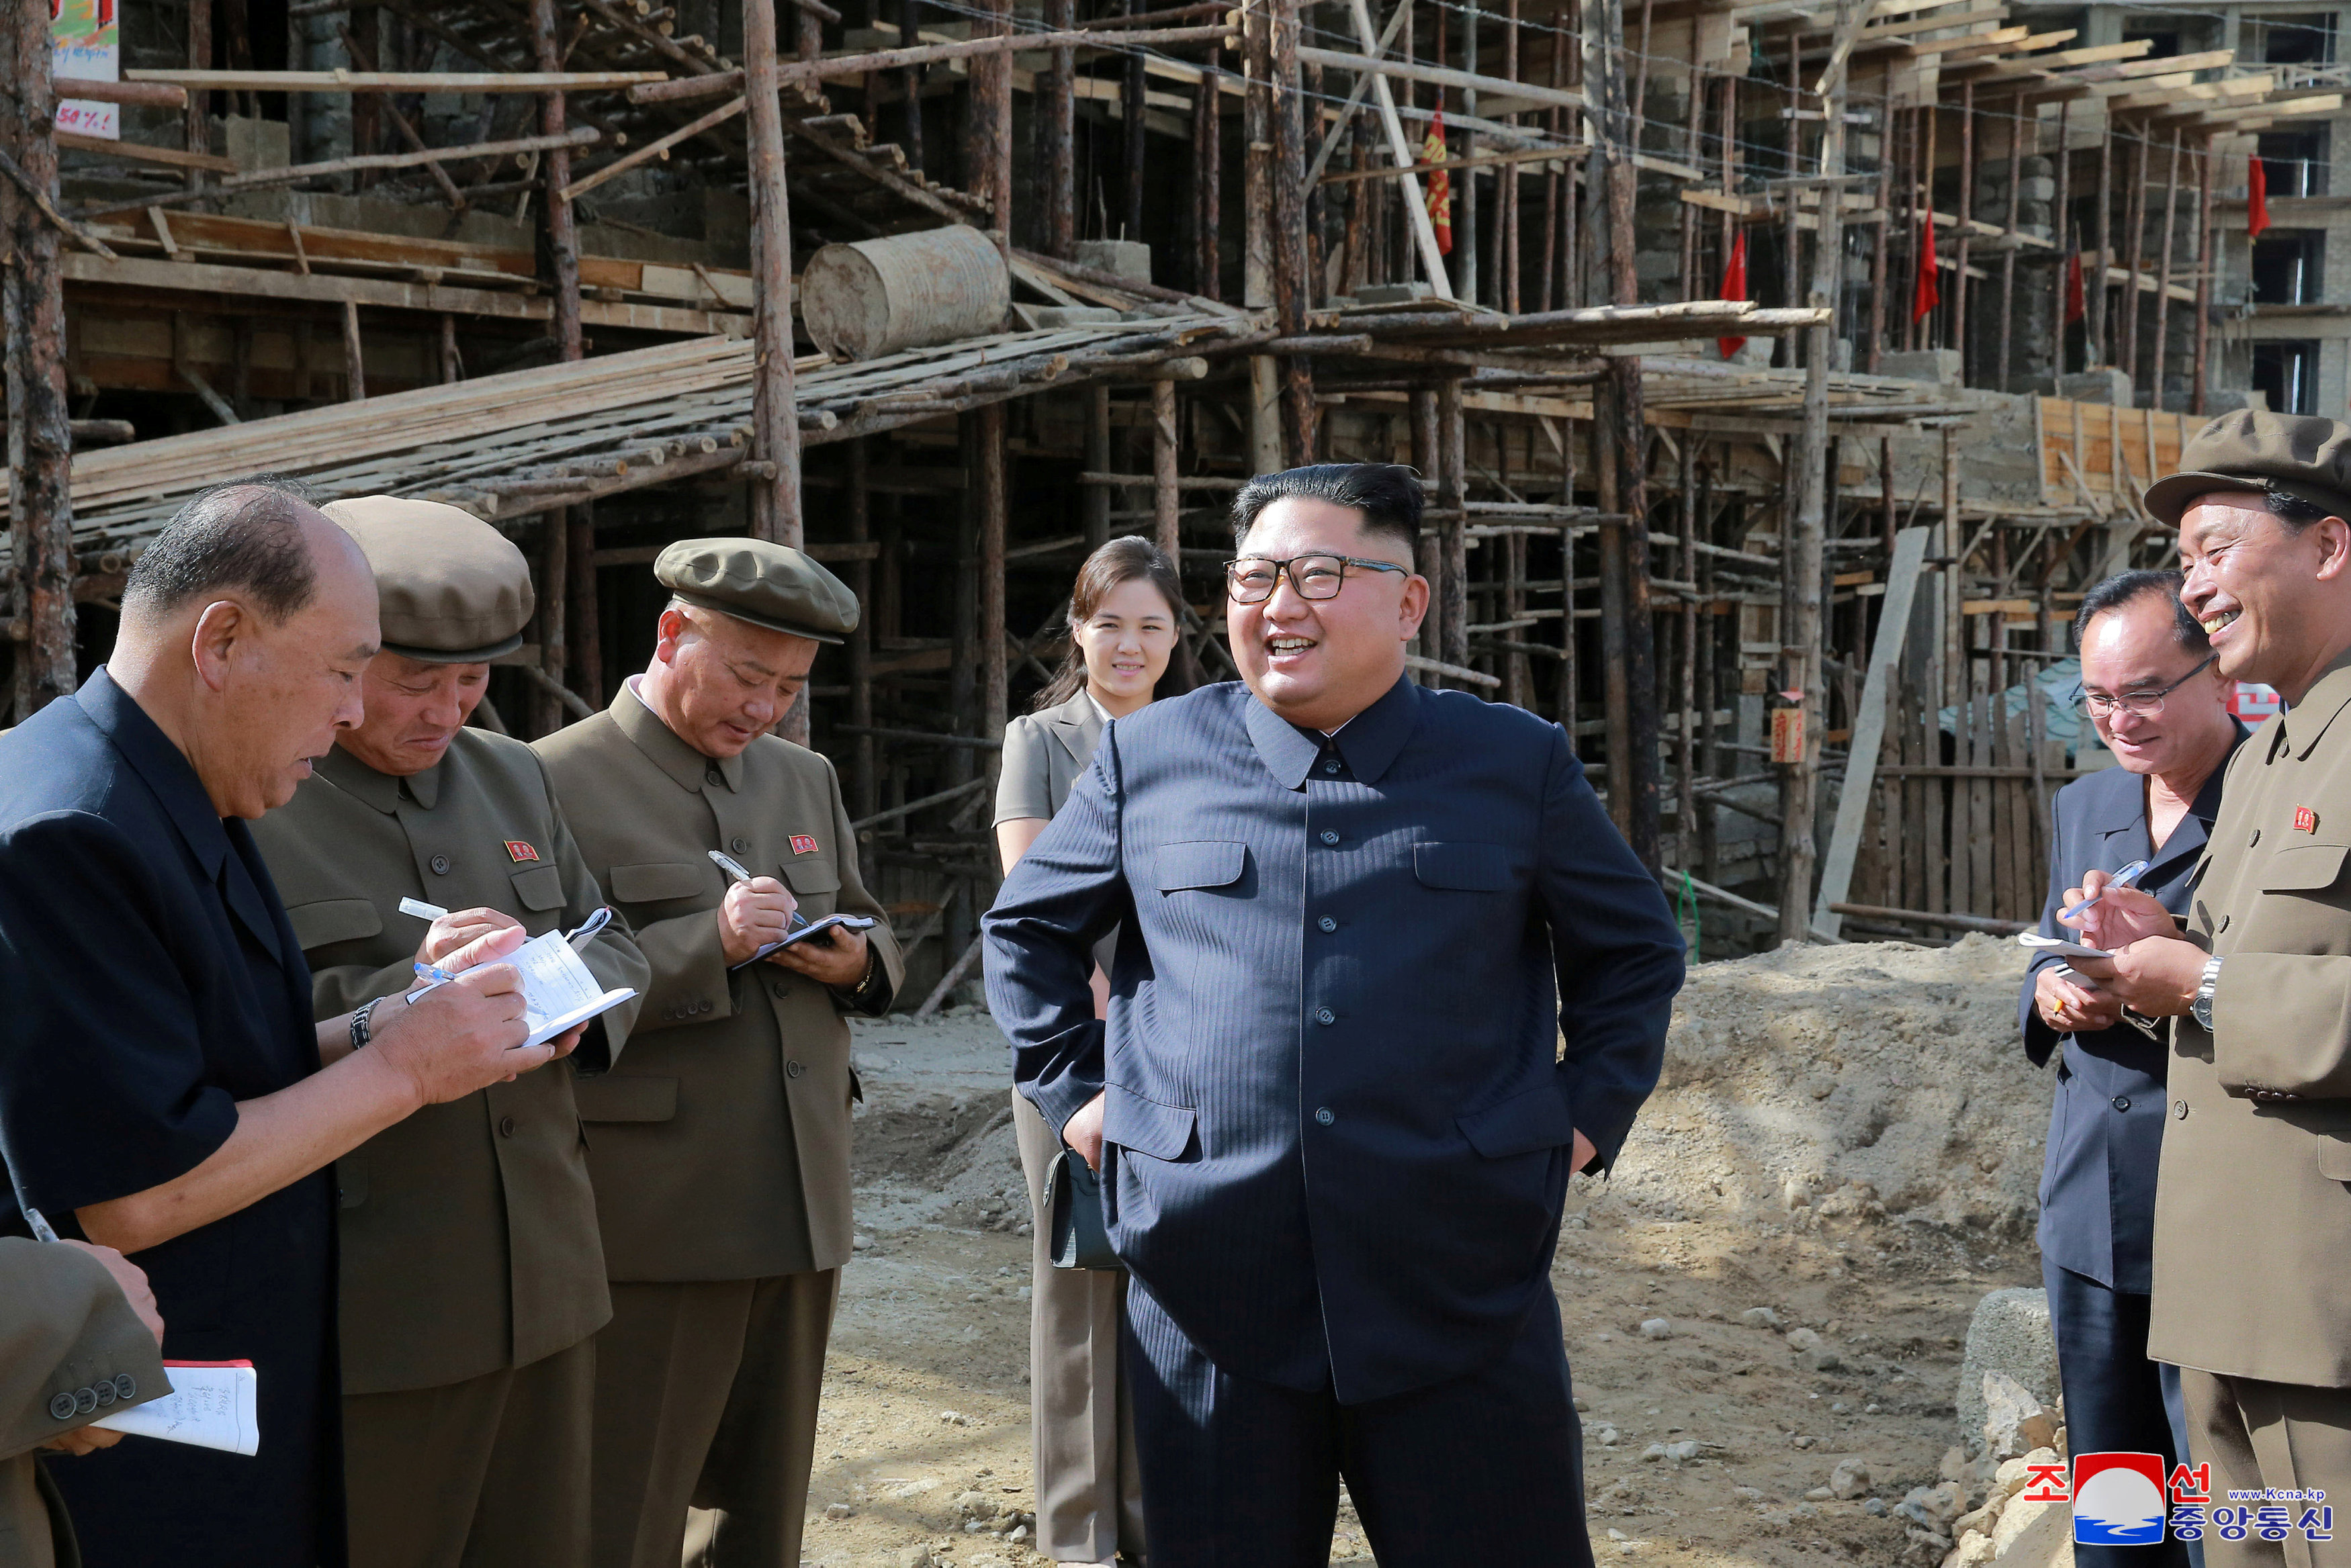 North Korean Leader Kim Jong Un and his wife Ri Sol Ju give field guidance at construction sites in Samjiyon County, North Korea, in this undated photo released by North Korea's Korean Central News Agency (KCNA) on August 18, 2018. KCNA via REUTER